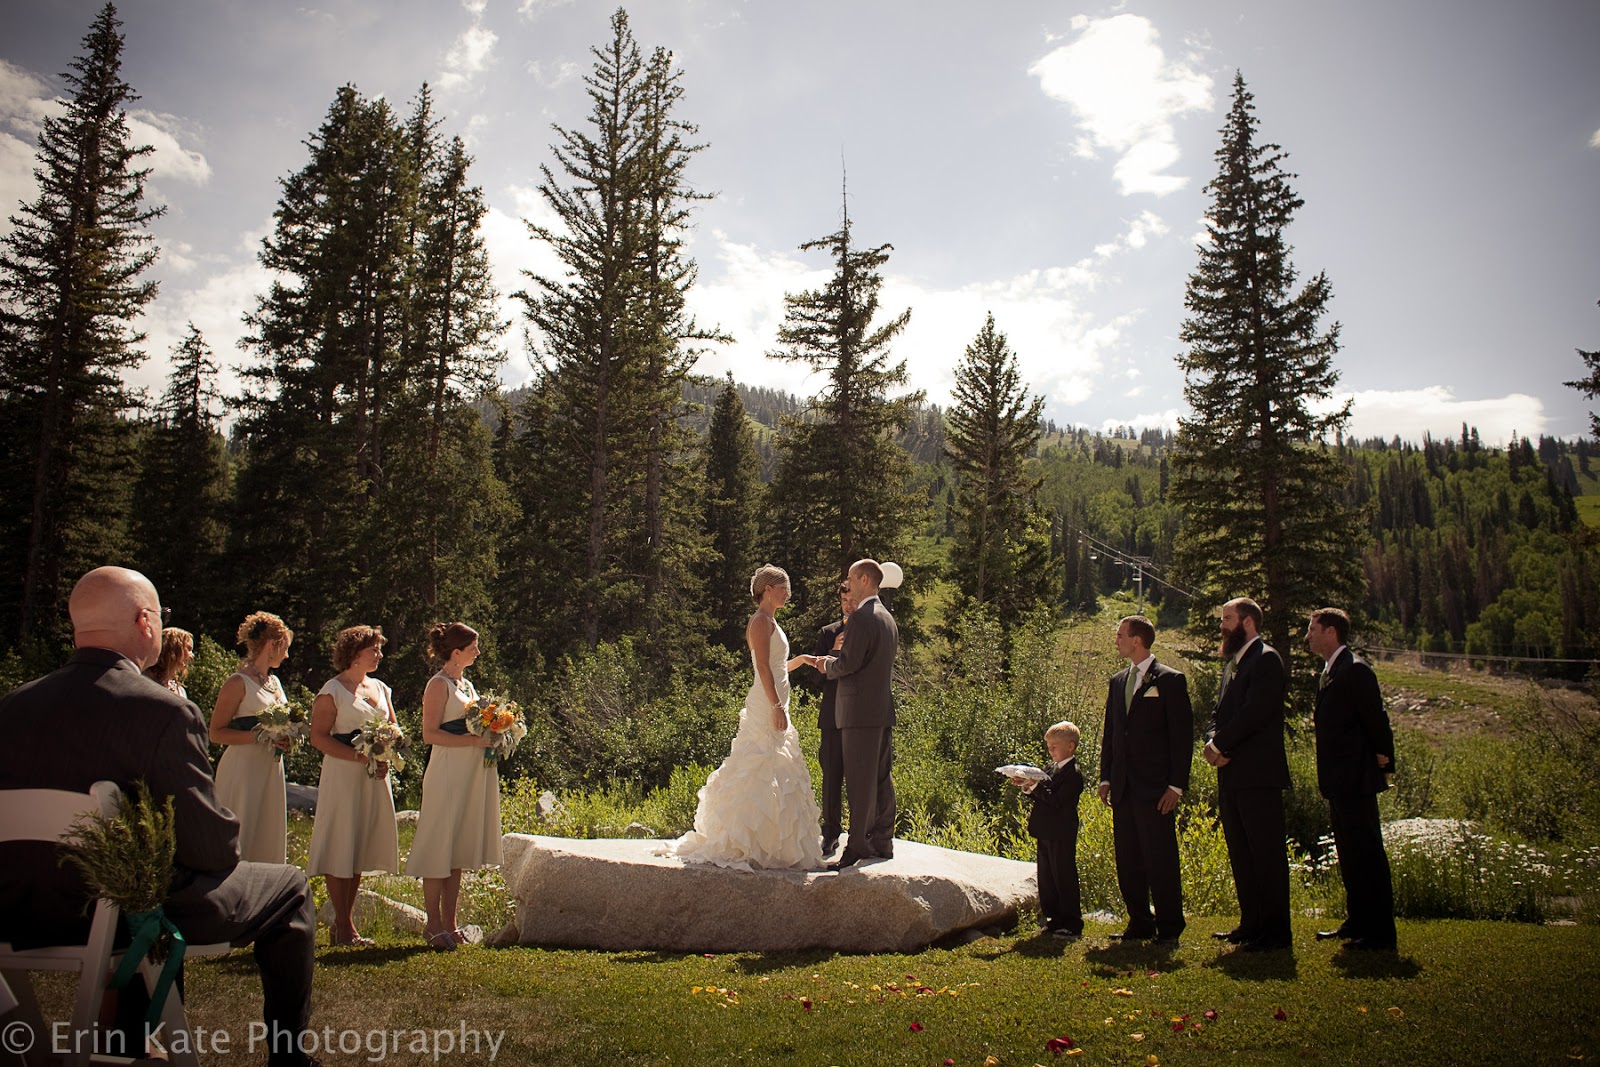 solitude mountain resort - a hidden gem for weddings, events and